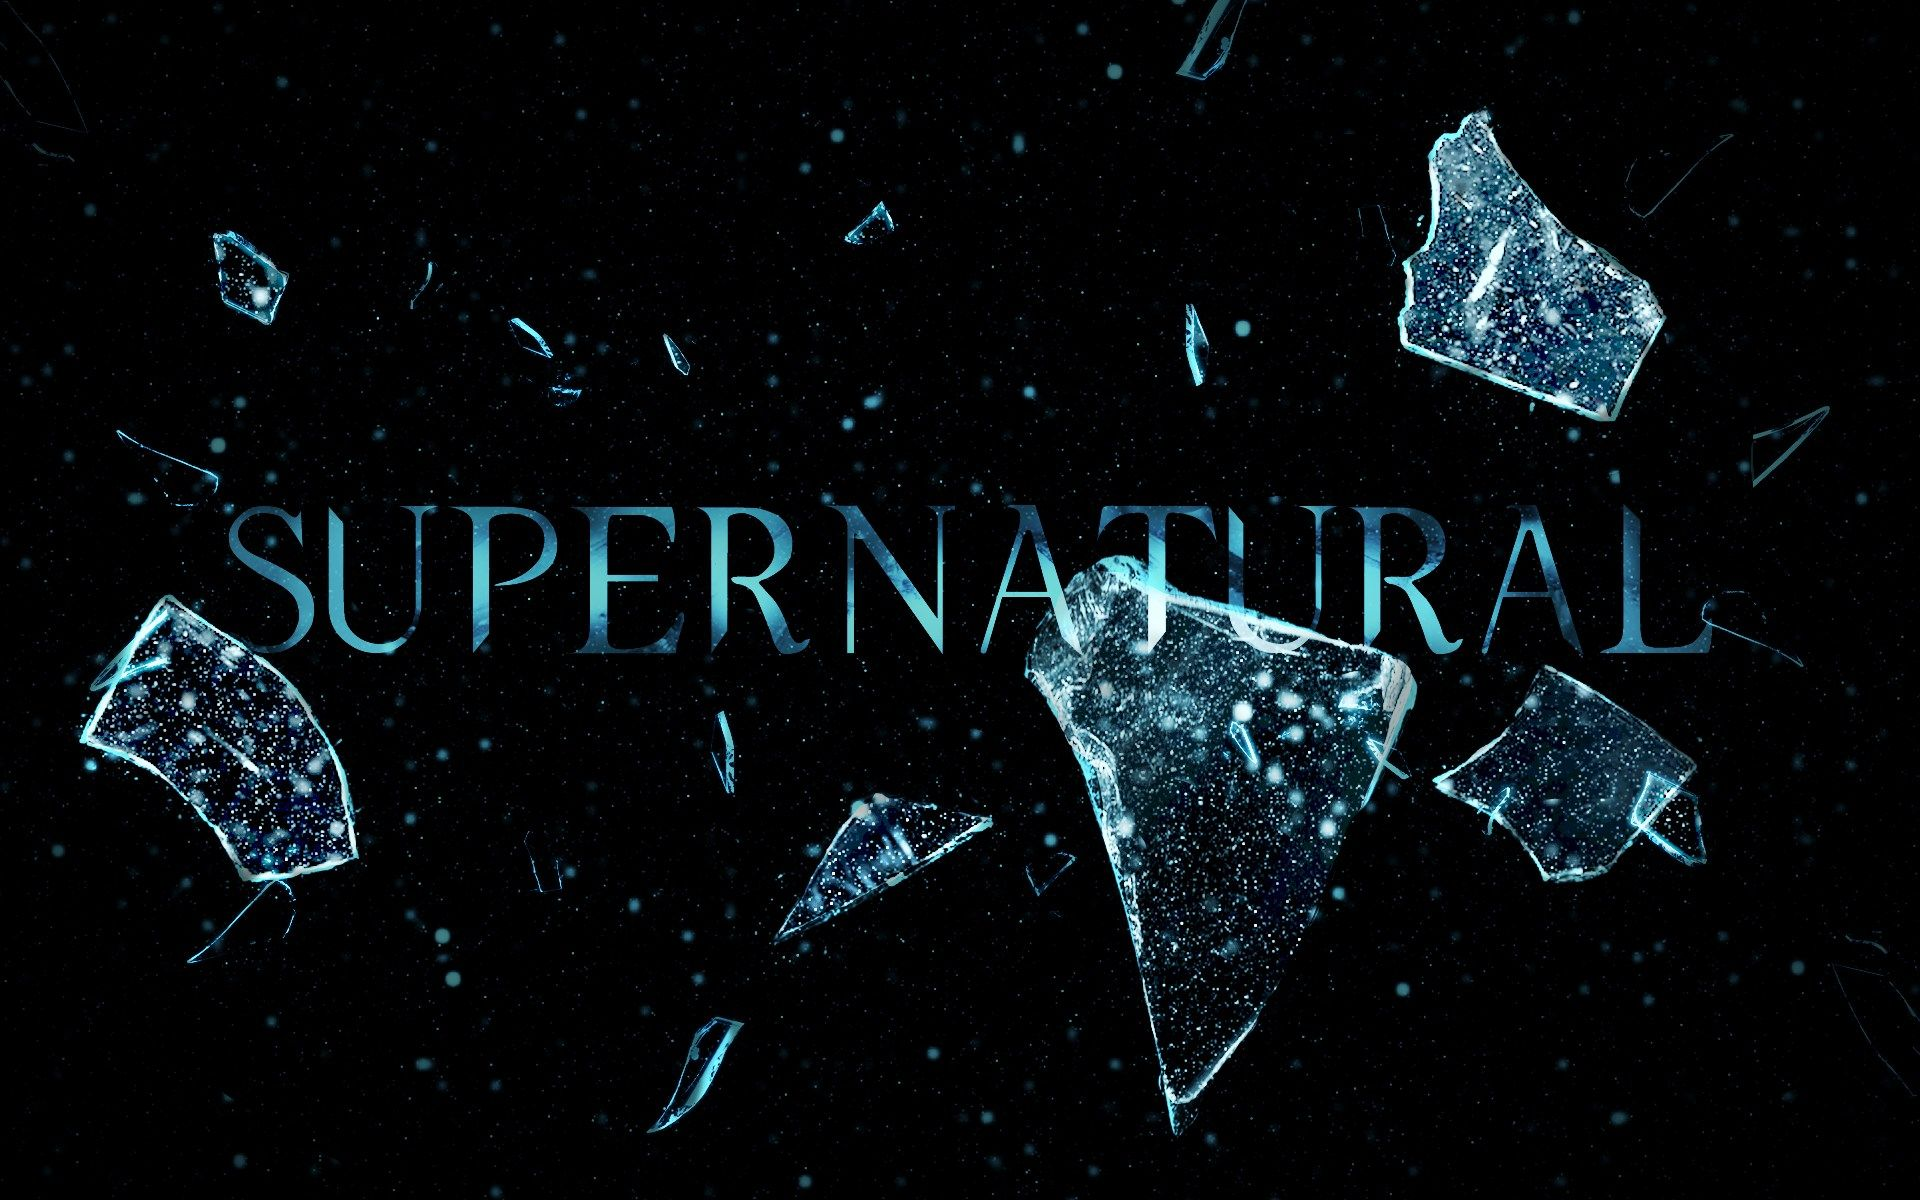 Supernatural Wallpaper Desktop Backgrounds Sobrenatural